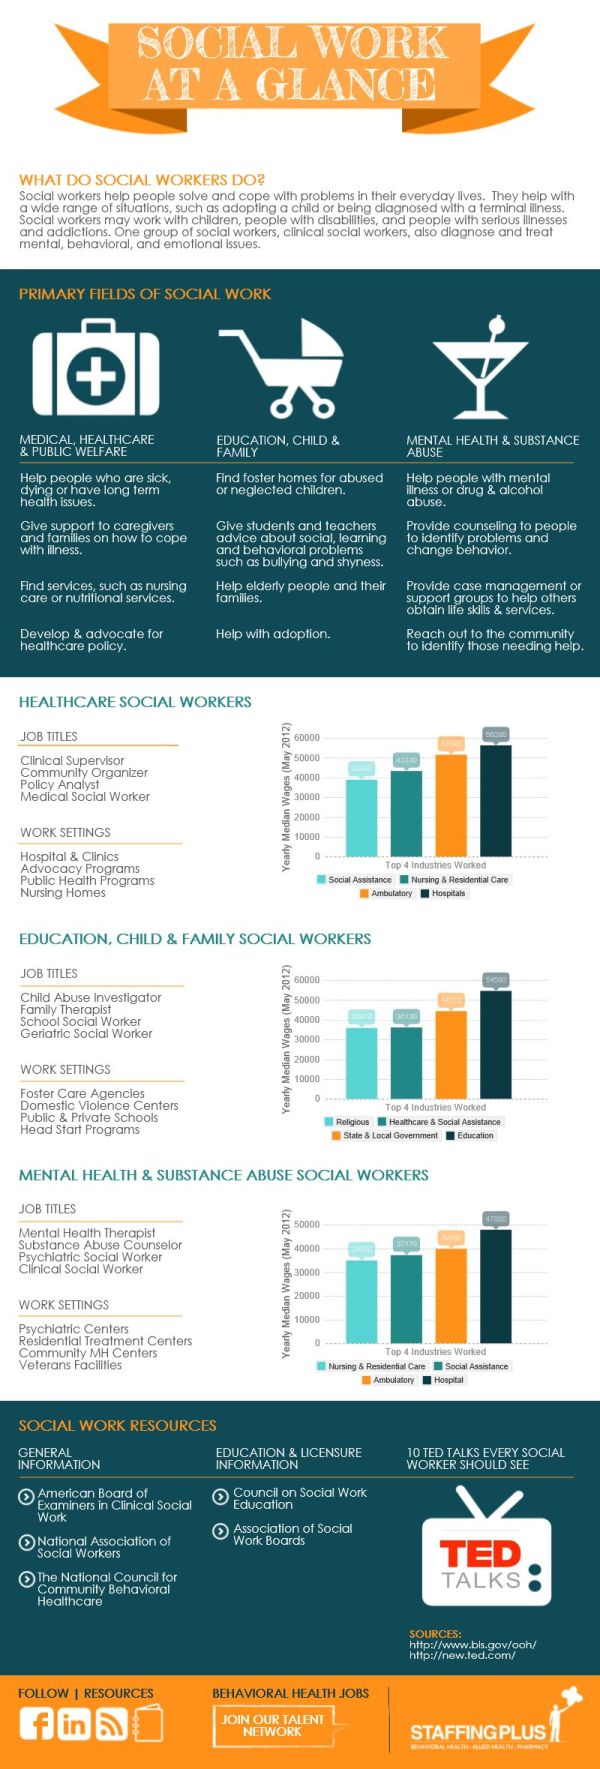 best ideas about social services social work in celebration of social workers infographic social work month 2014 nasw